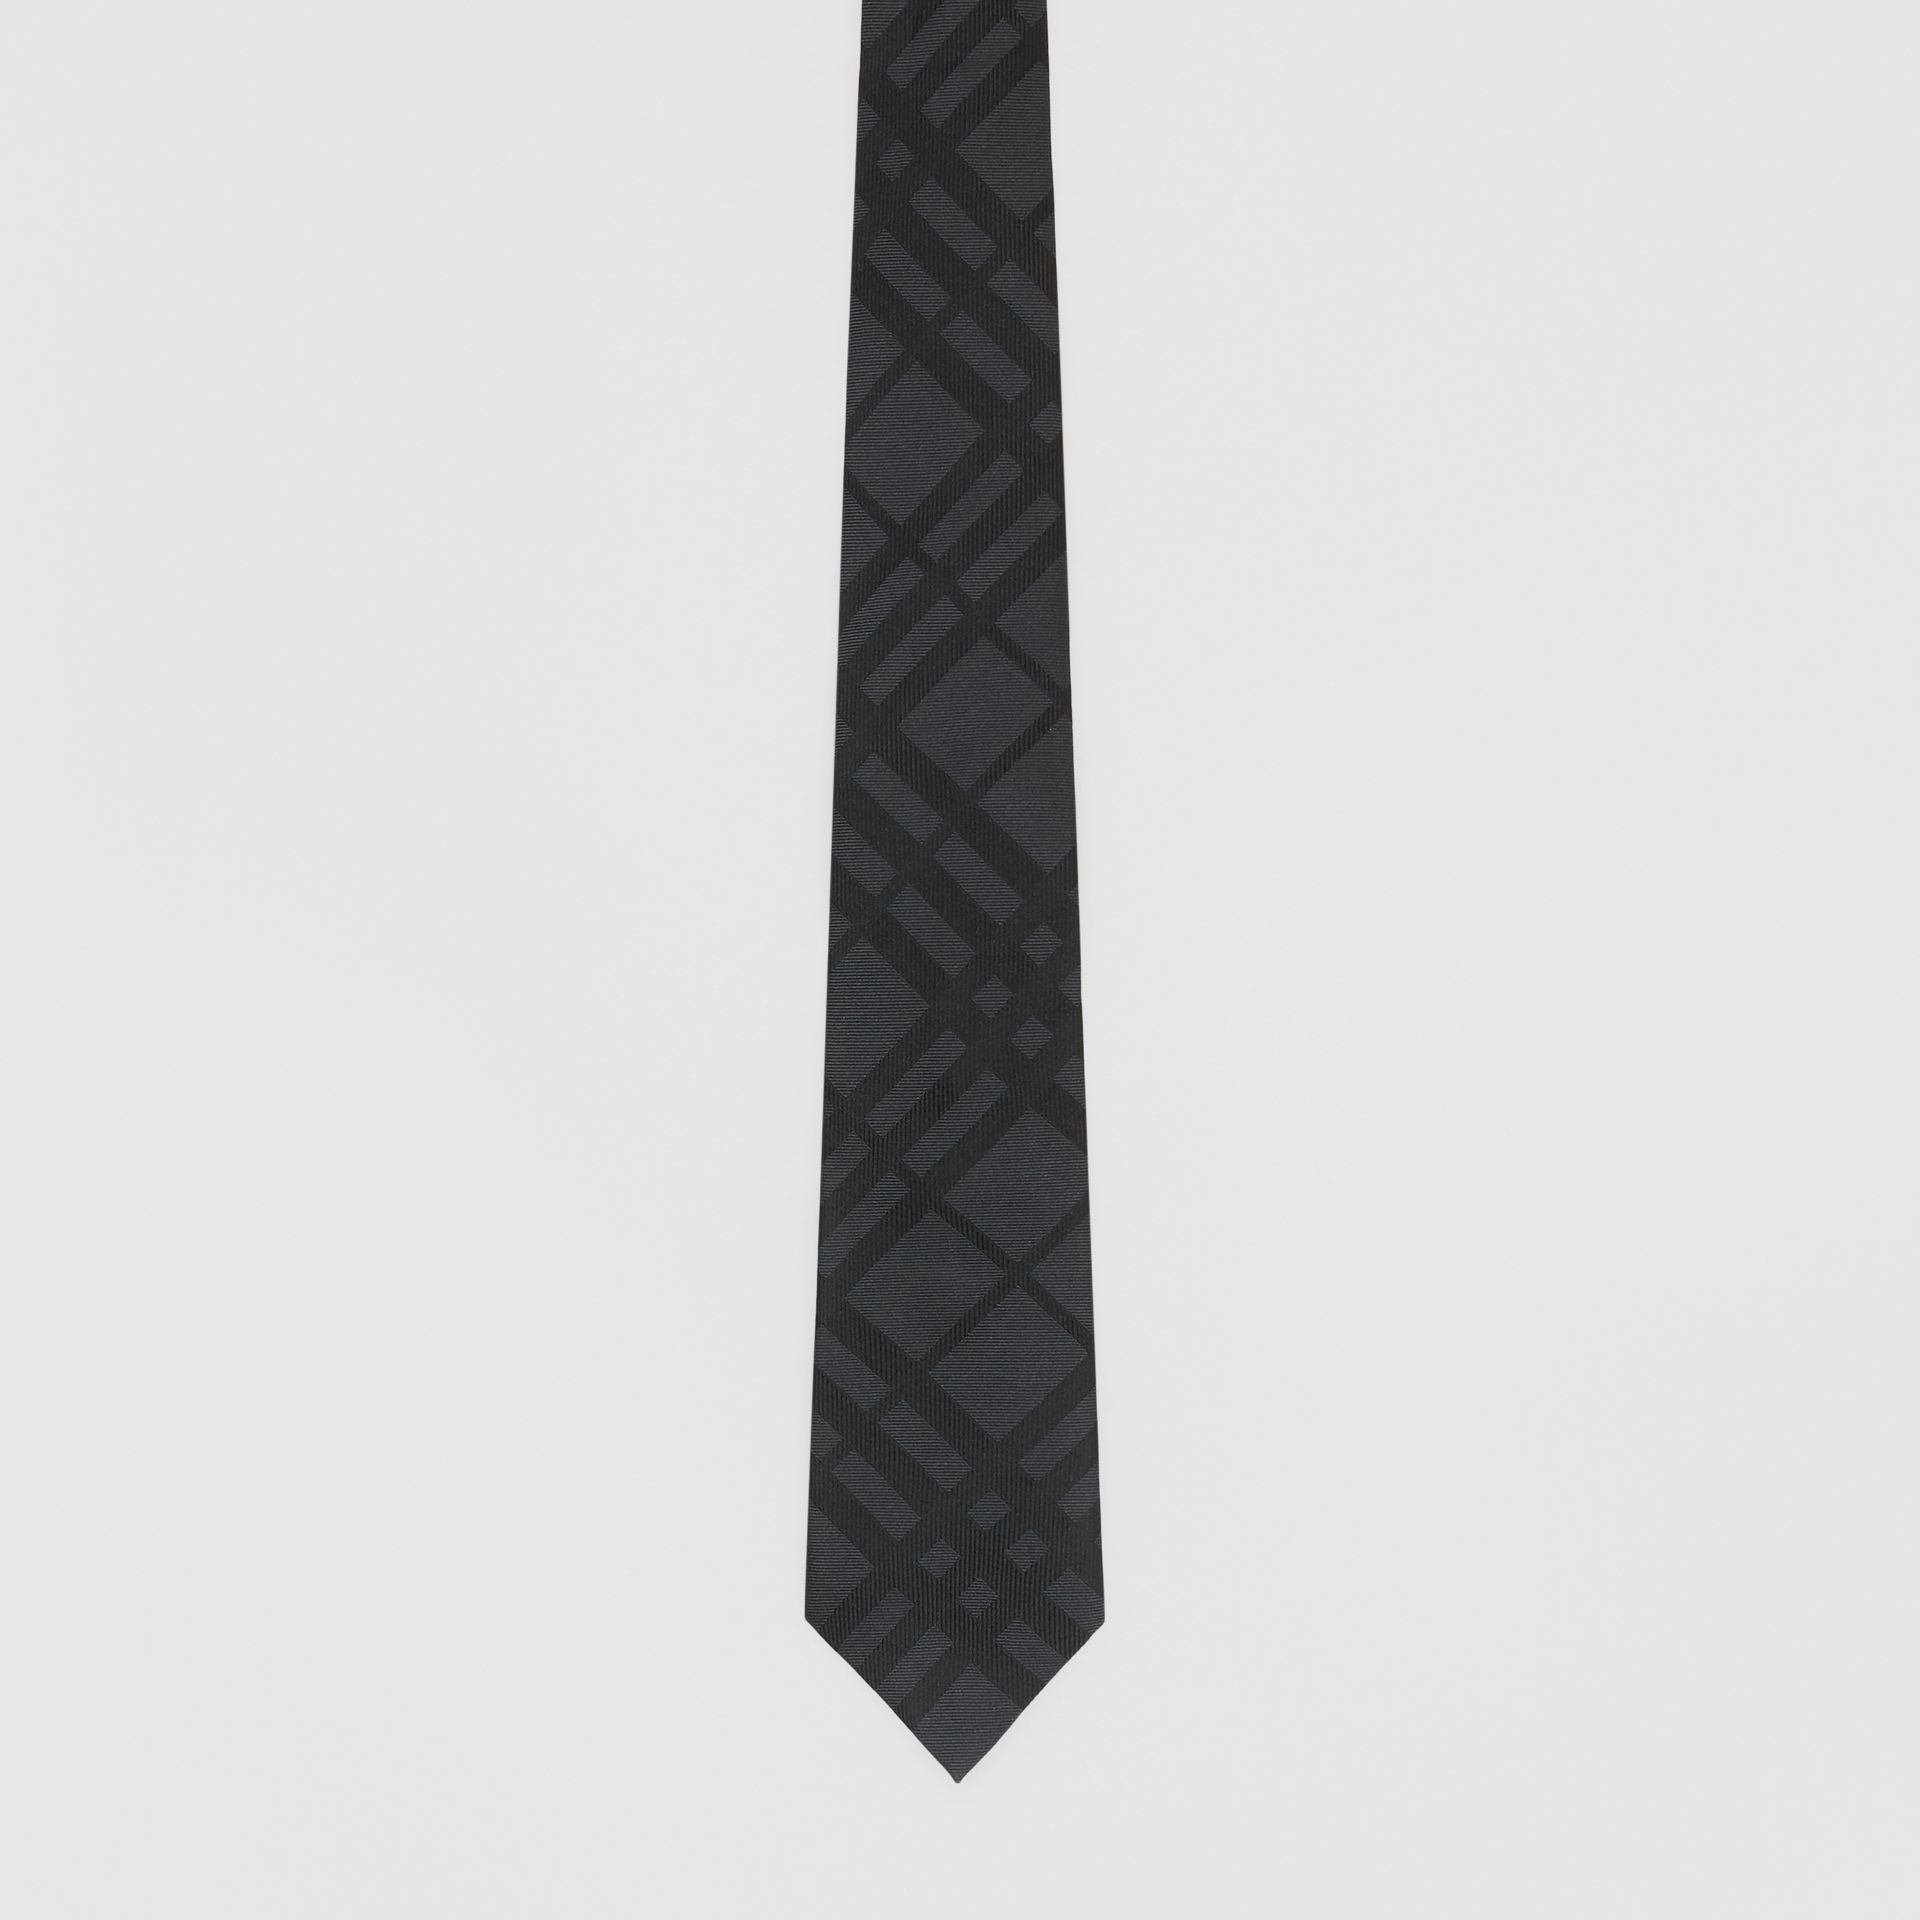 Classic Cut Check Silk Jacquard Tie in Charcoal - Men | Burberry - gallery image 3